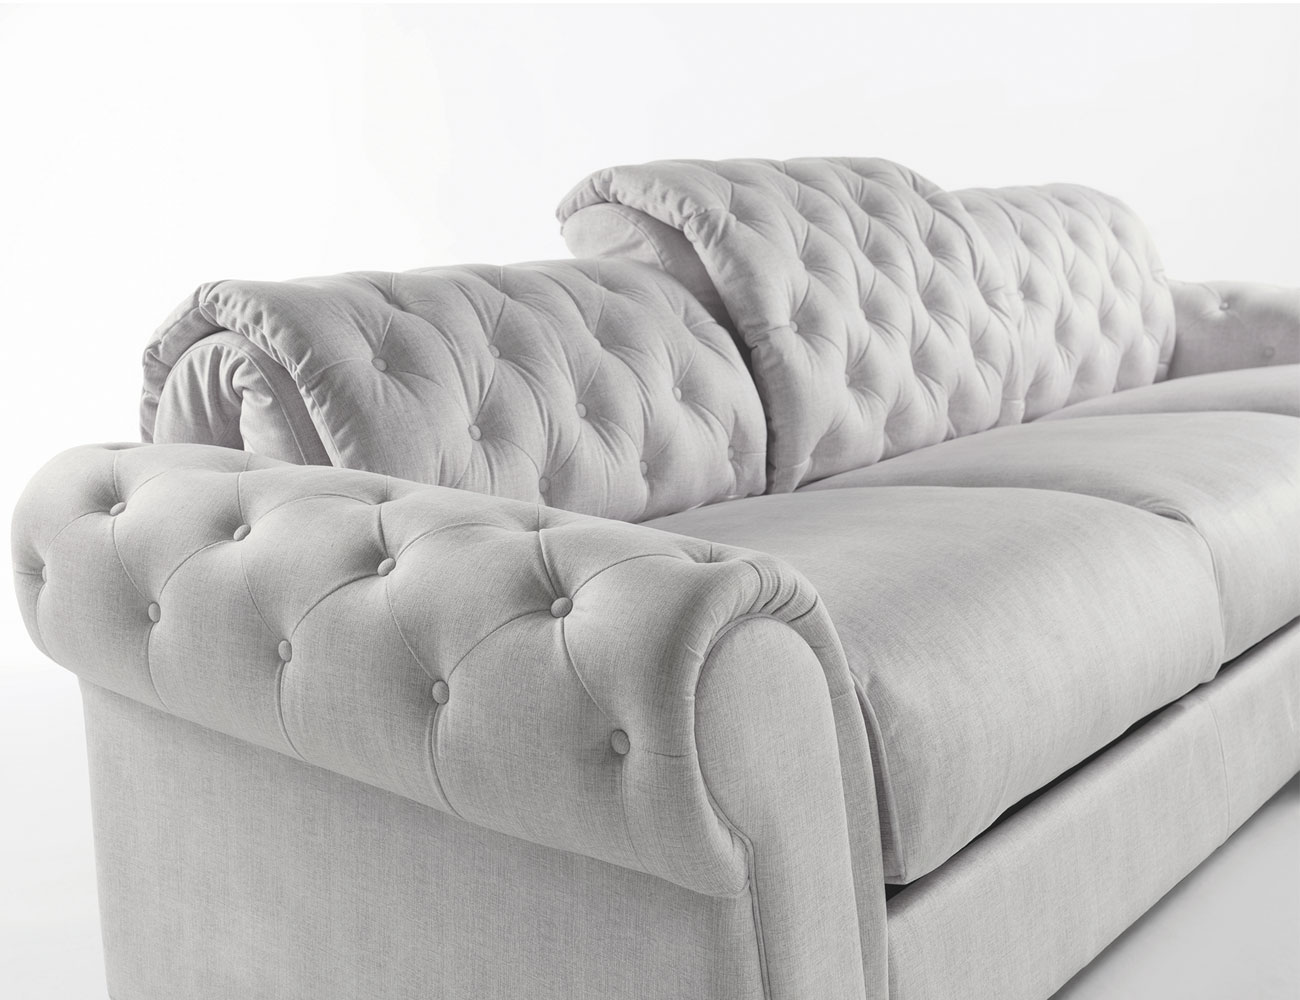 Sofa chaiselongue gran lujo decorativo capitone blanco tela 131